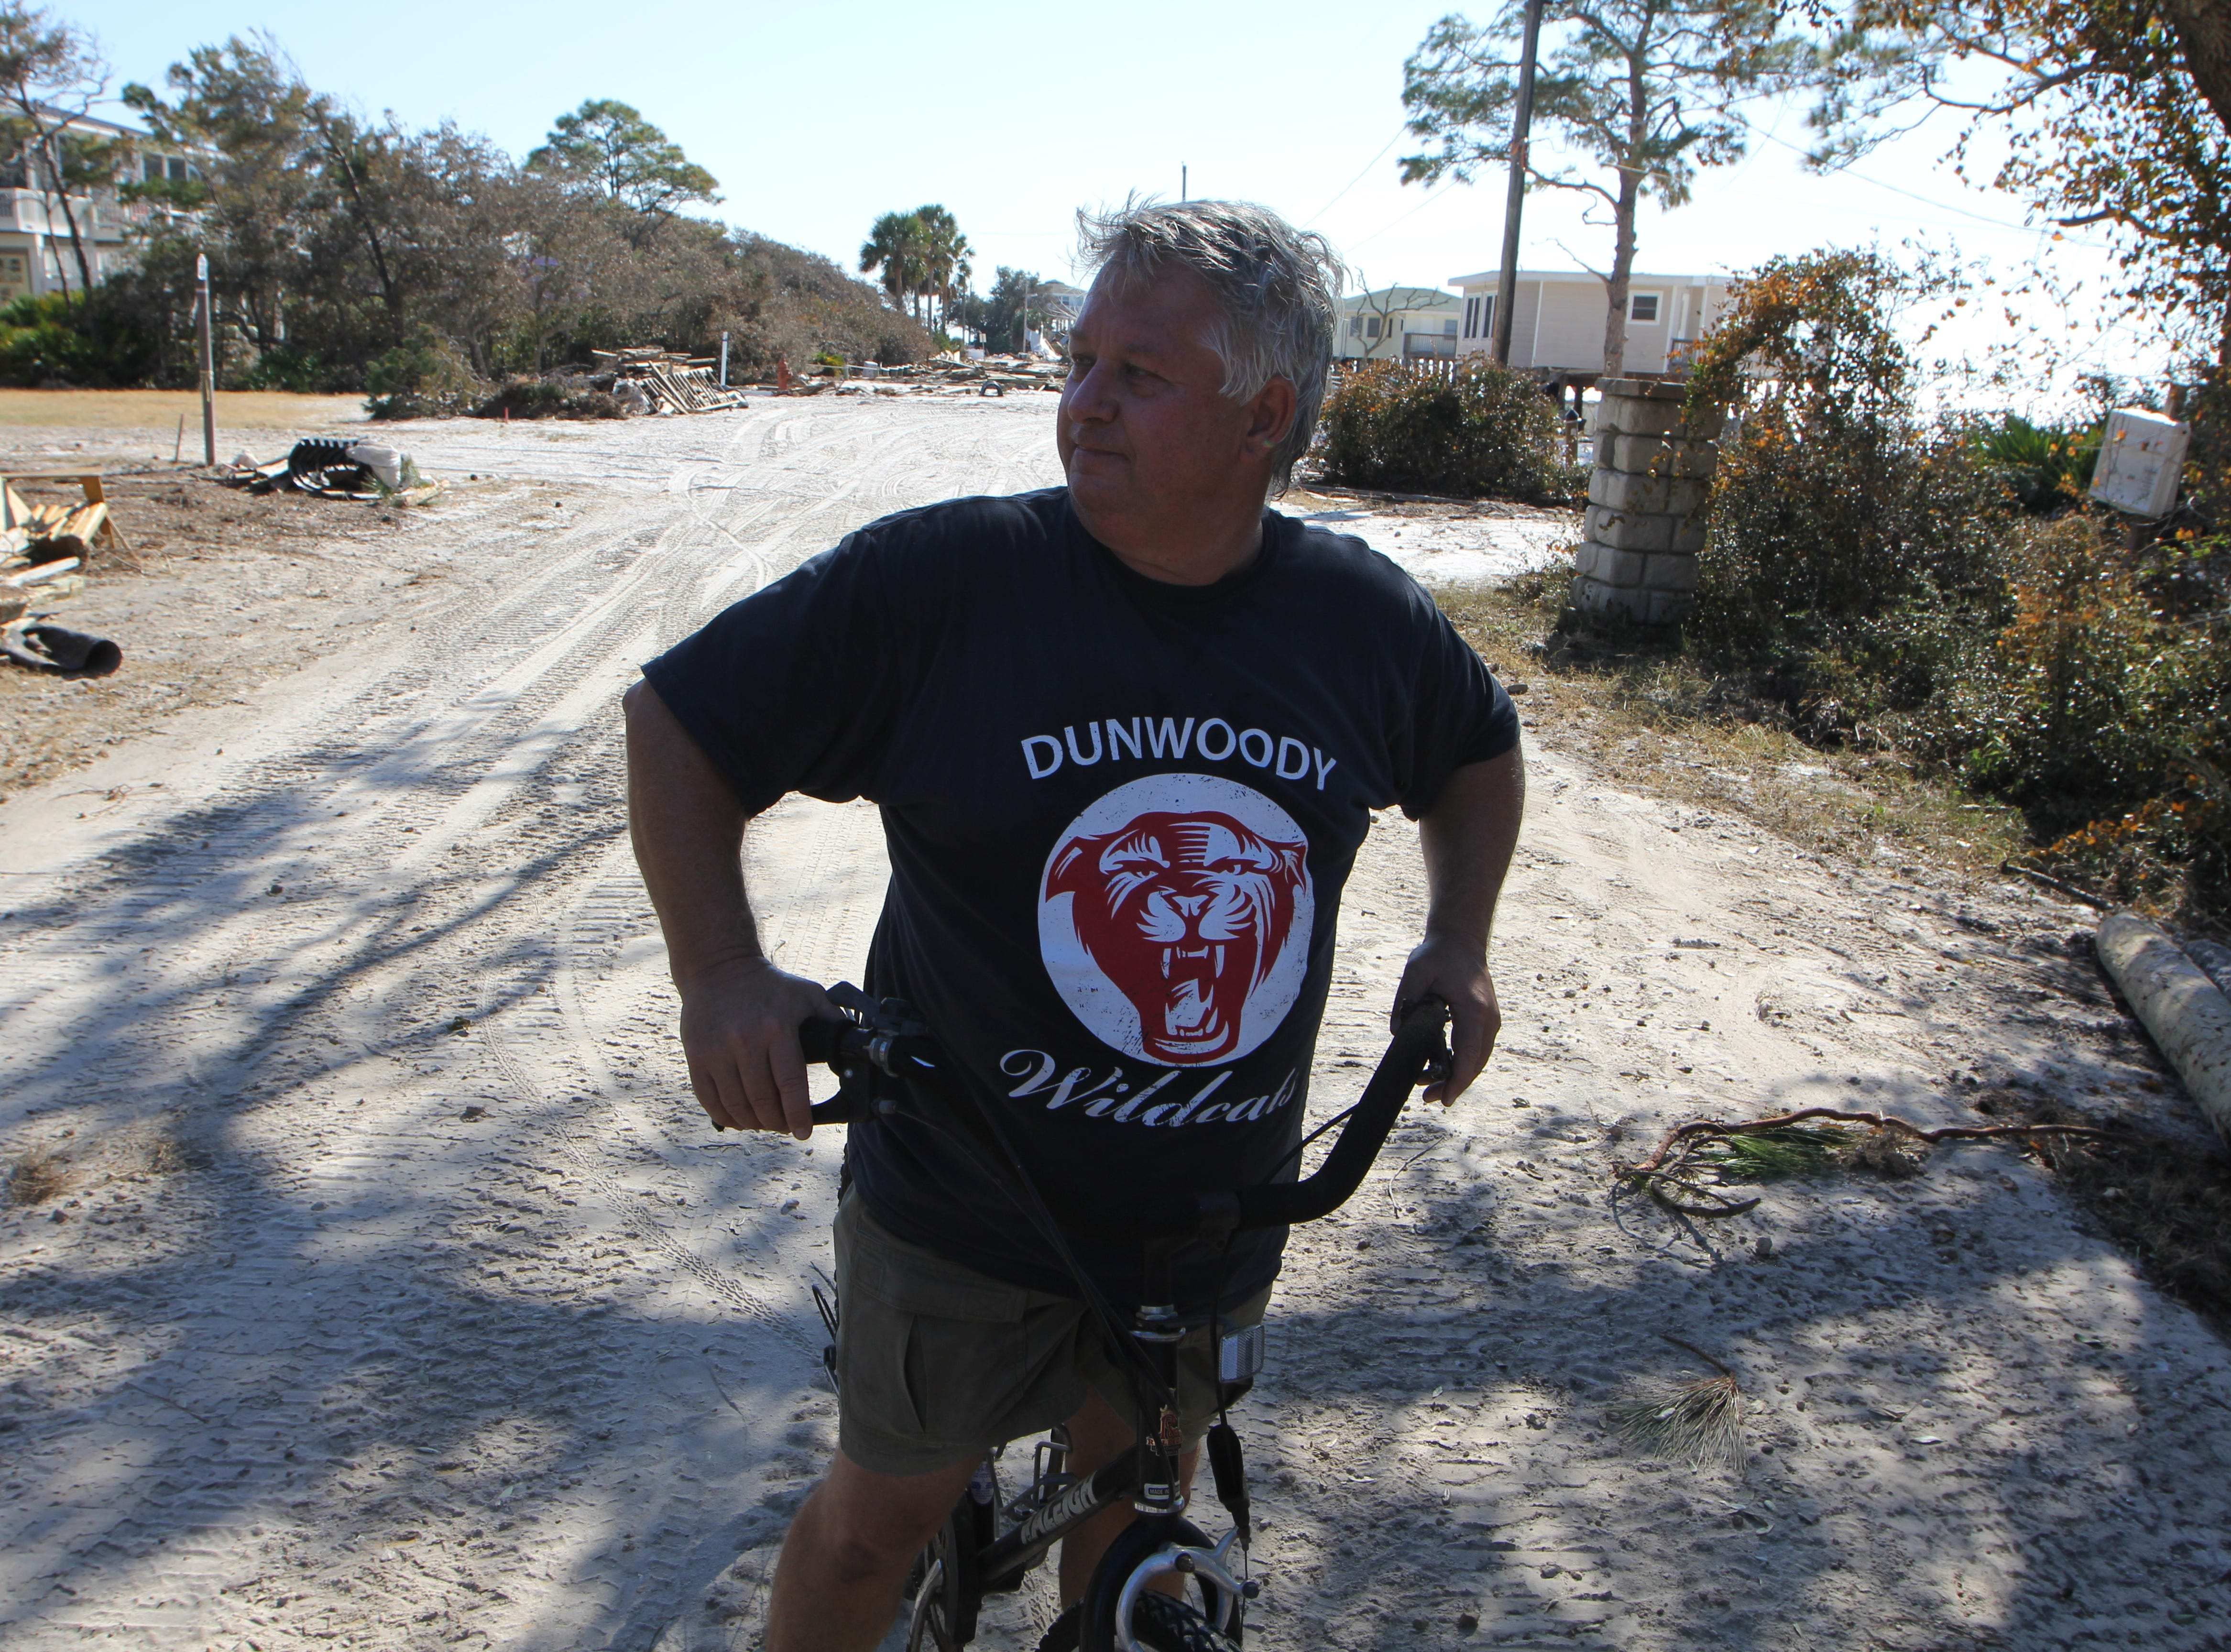 Brett Hensley surveys damage on Alligator Point after Hurricane Michael. The storm washed out a major portion of the main road making accessibility an issue.